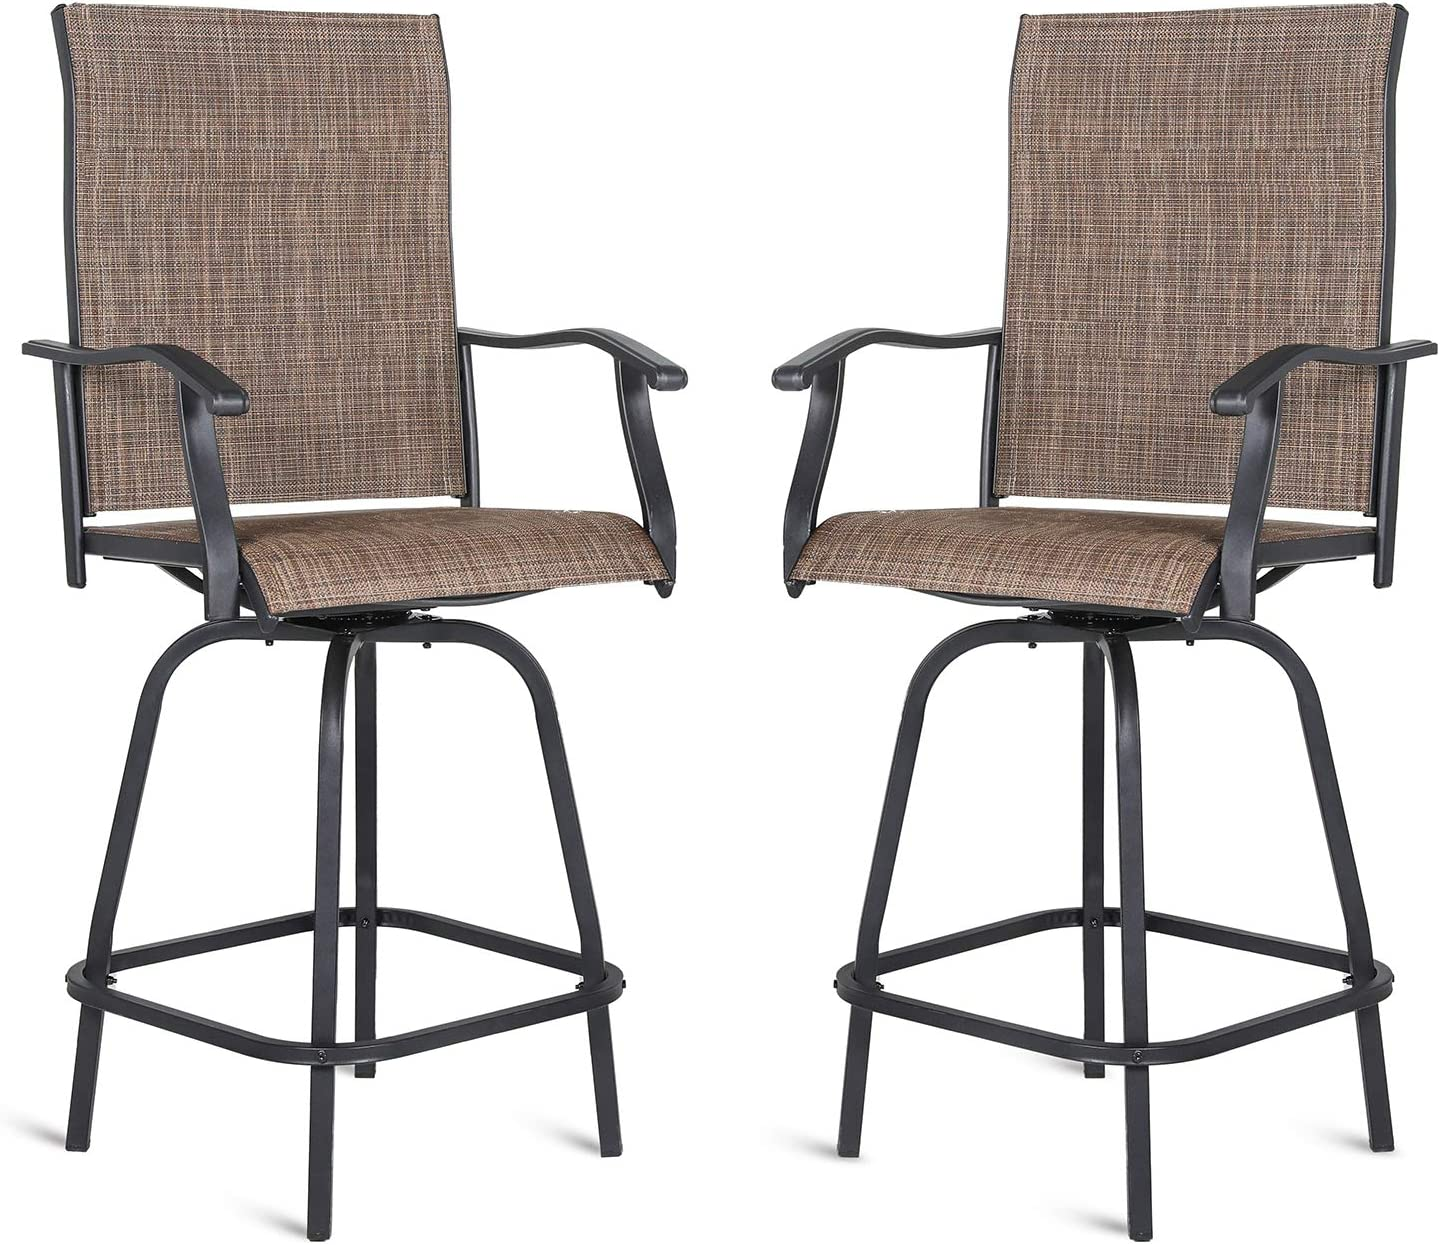 Patio Swivel Bar Stools for All-Weather, Outdoor Bar Height Chair with Armrest, 360 Degree Garden Furniture Set for Dining, Lawn, Backyard, Pool, Porch, 2 Pack